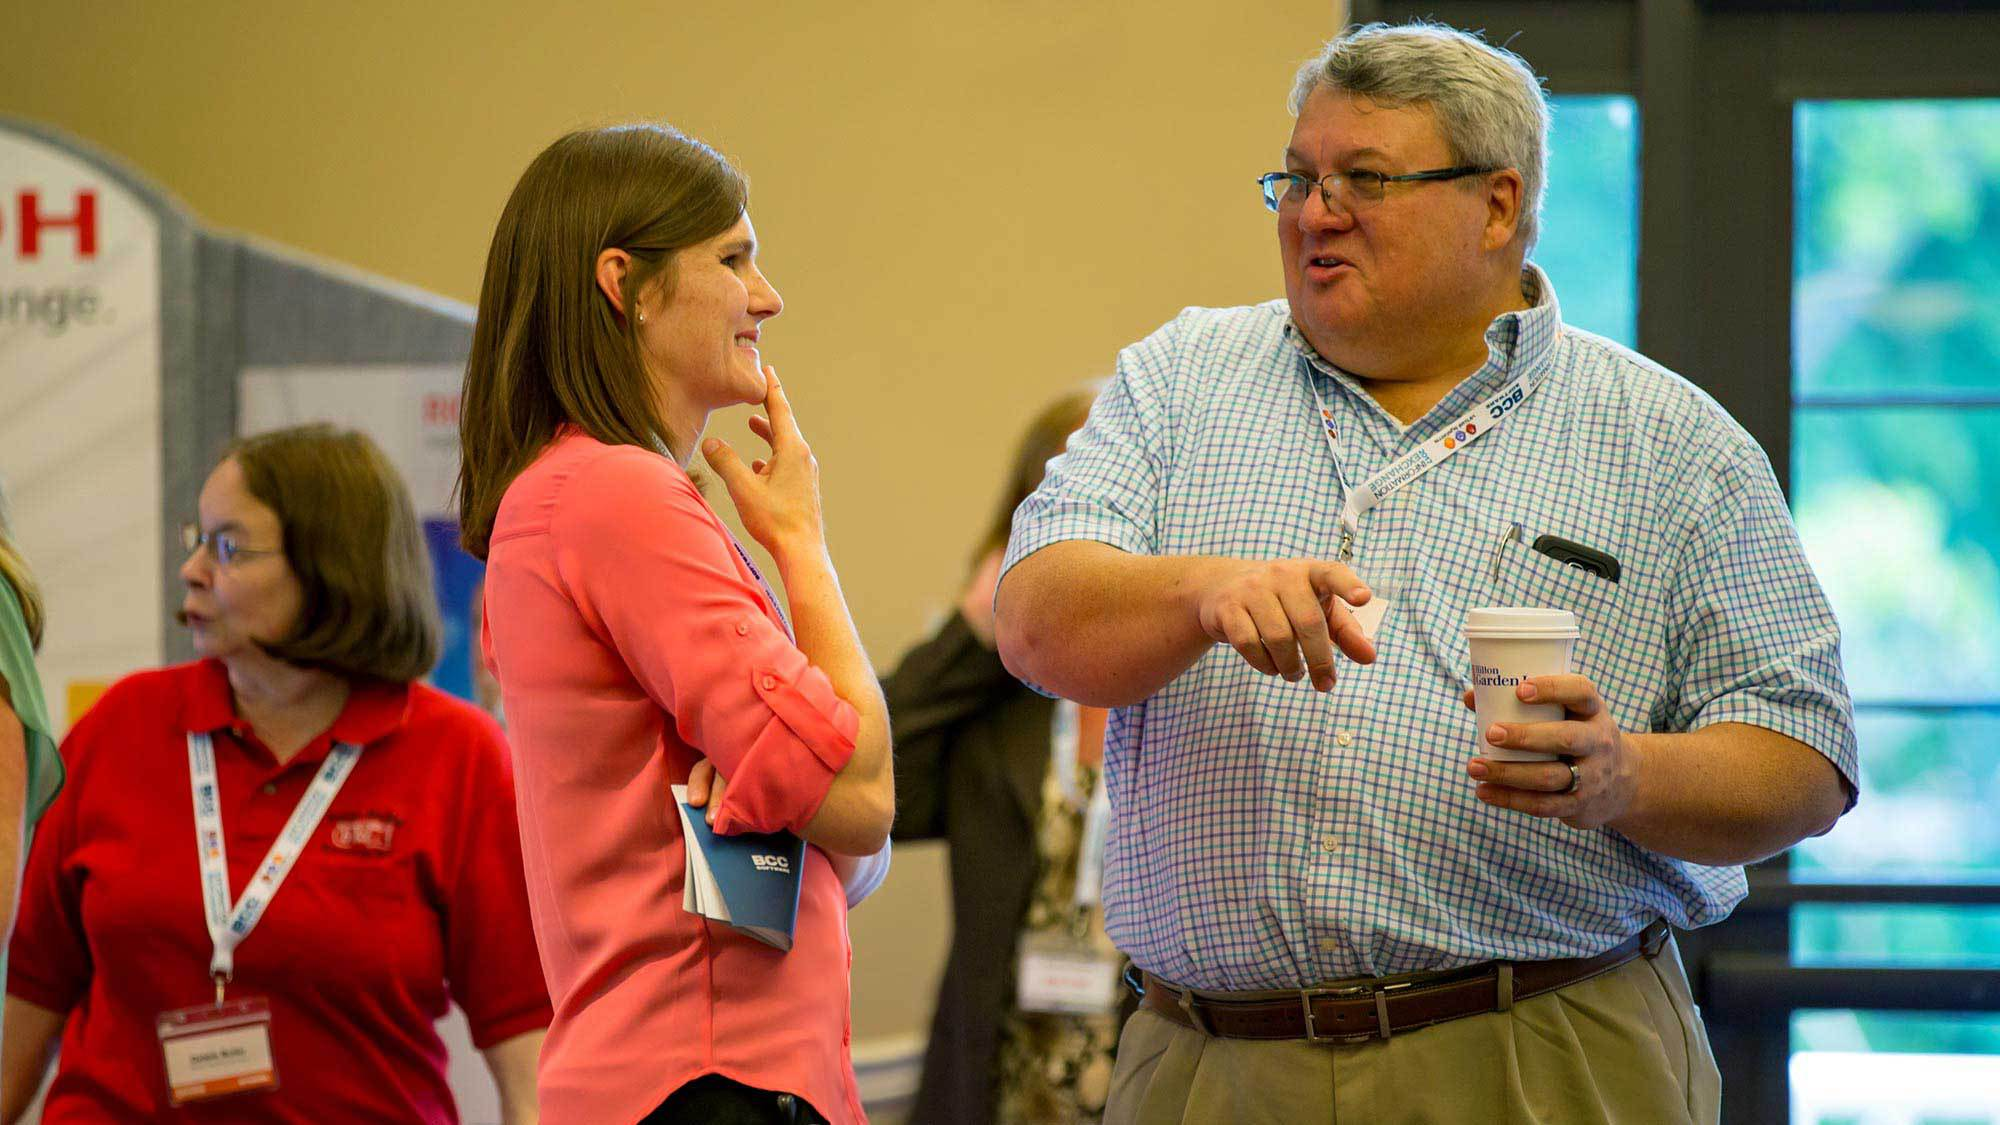 BCC Software customers Barb Wegner and Joe Murphy chatting at the Meeting Zone.